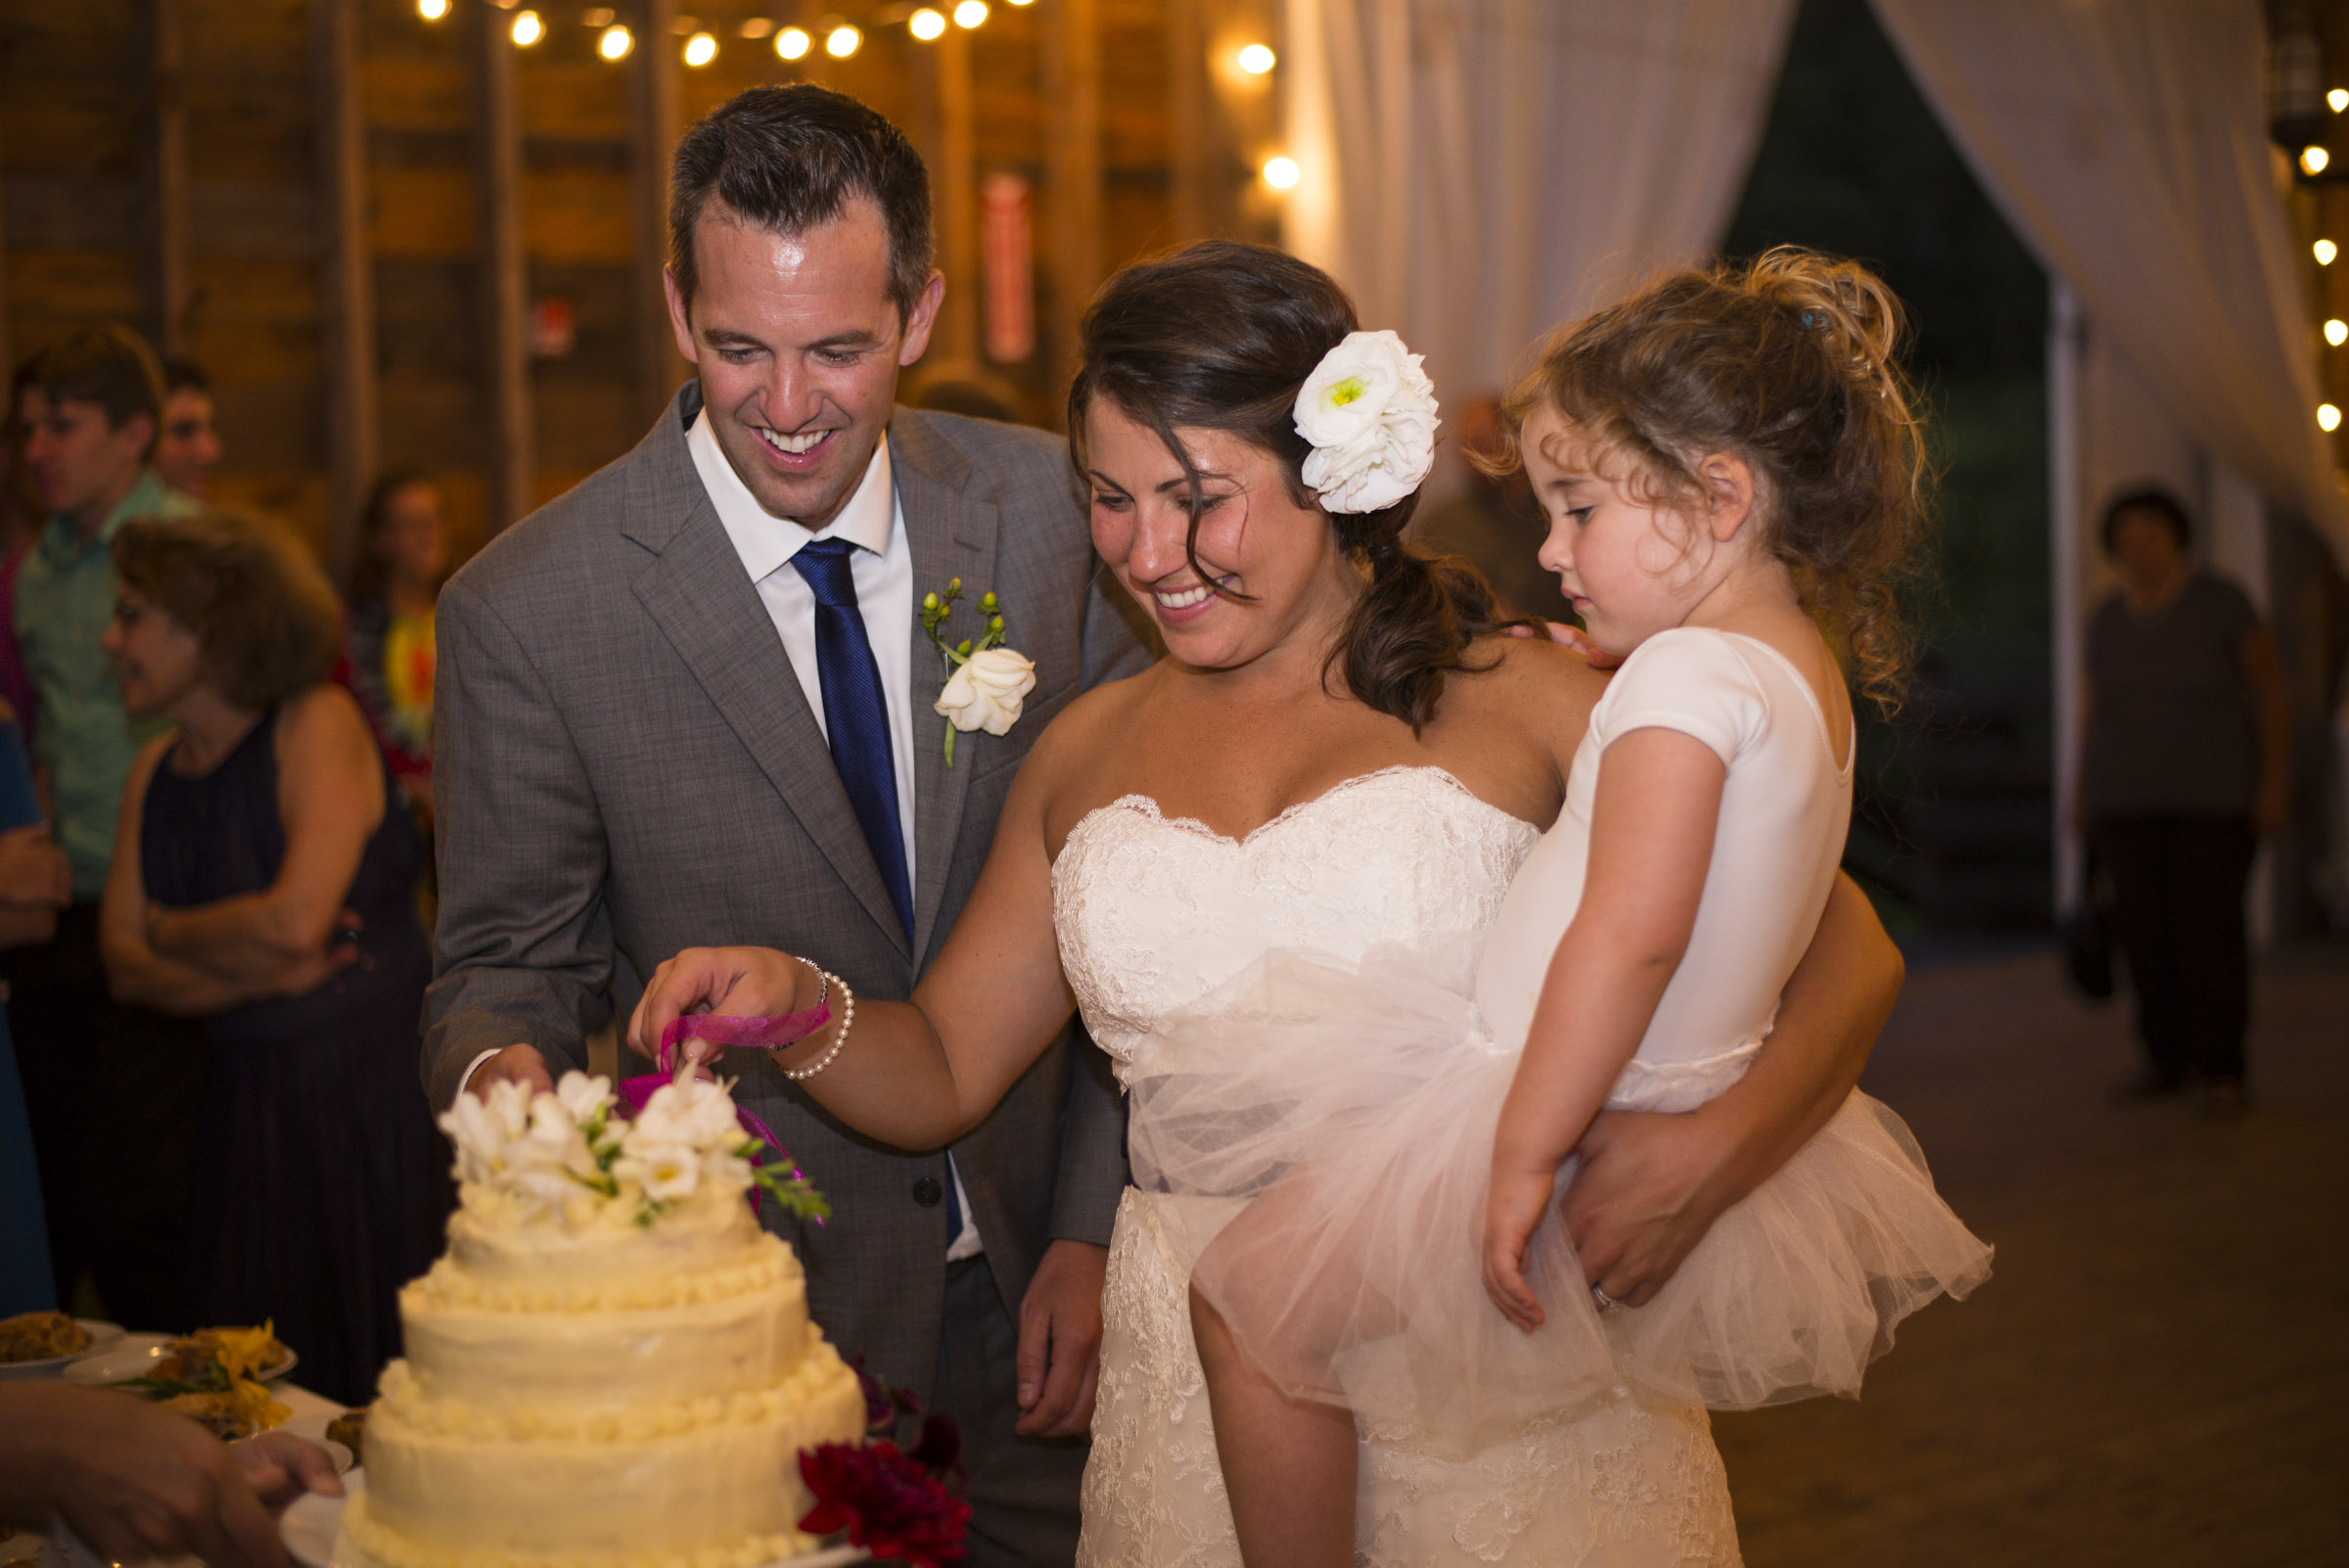 08232014-Chris&VanessaWedding-JuliaLuckettPhotography-527